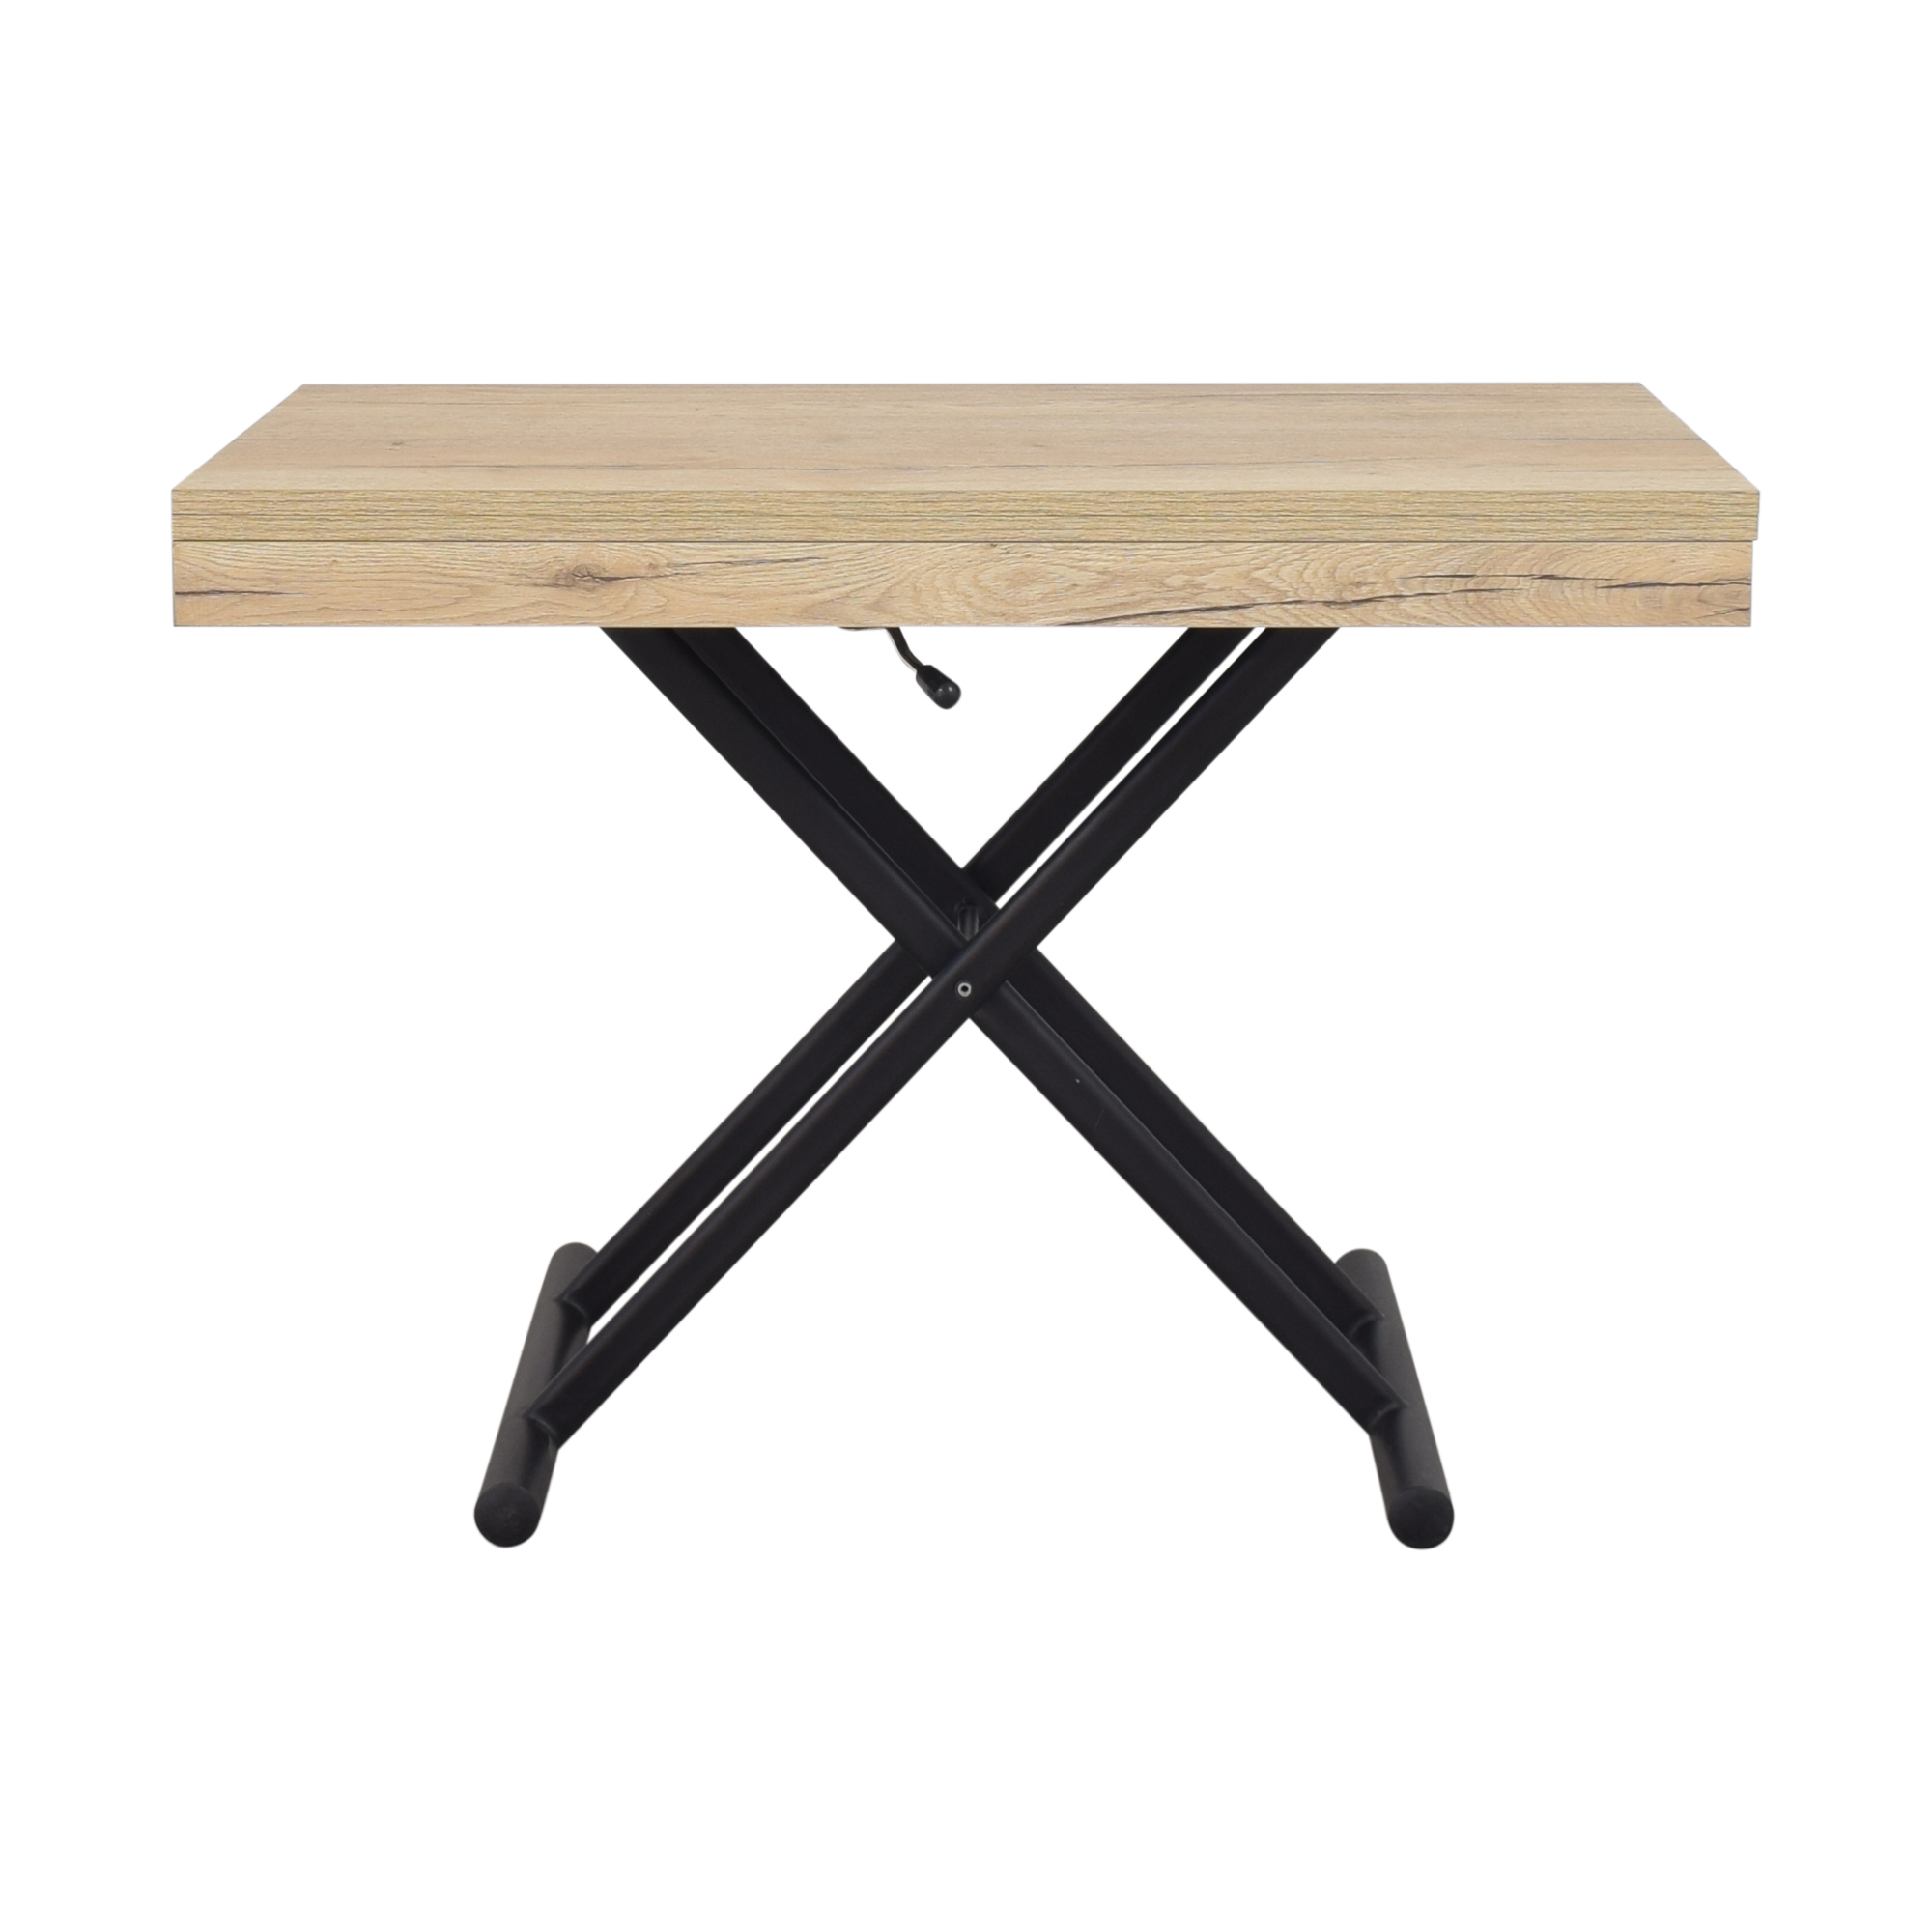 Expand Furniture Expand Furniture Alzare Square Transforming Table light brown & black